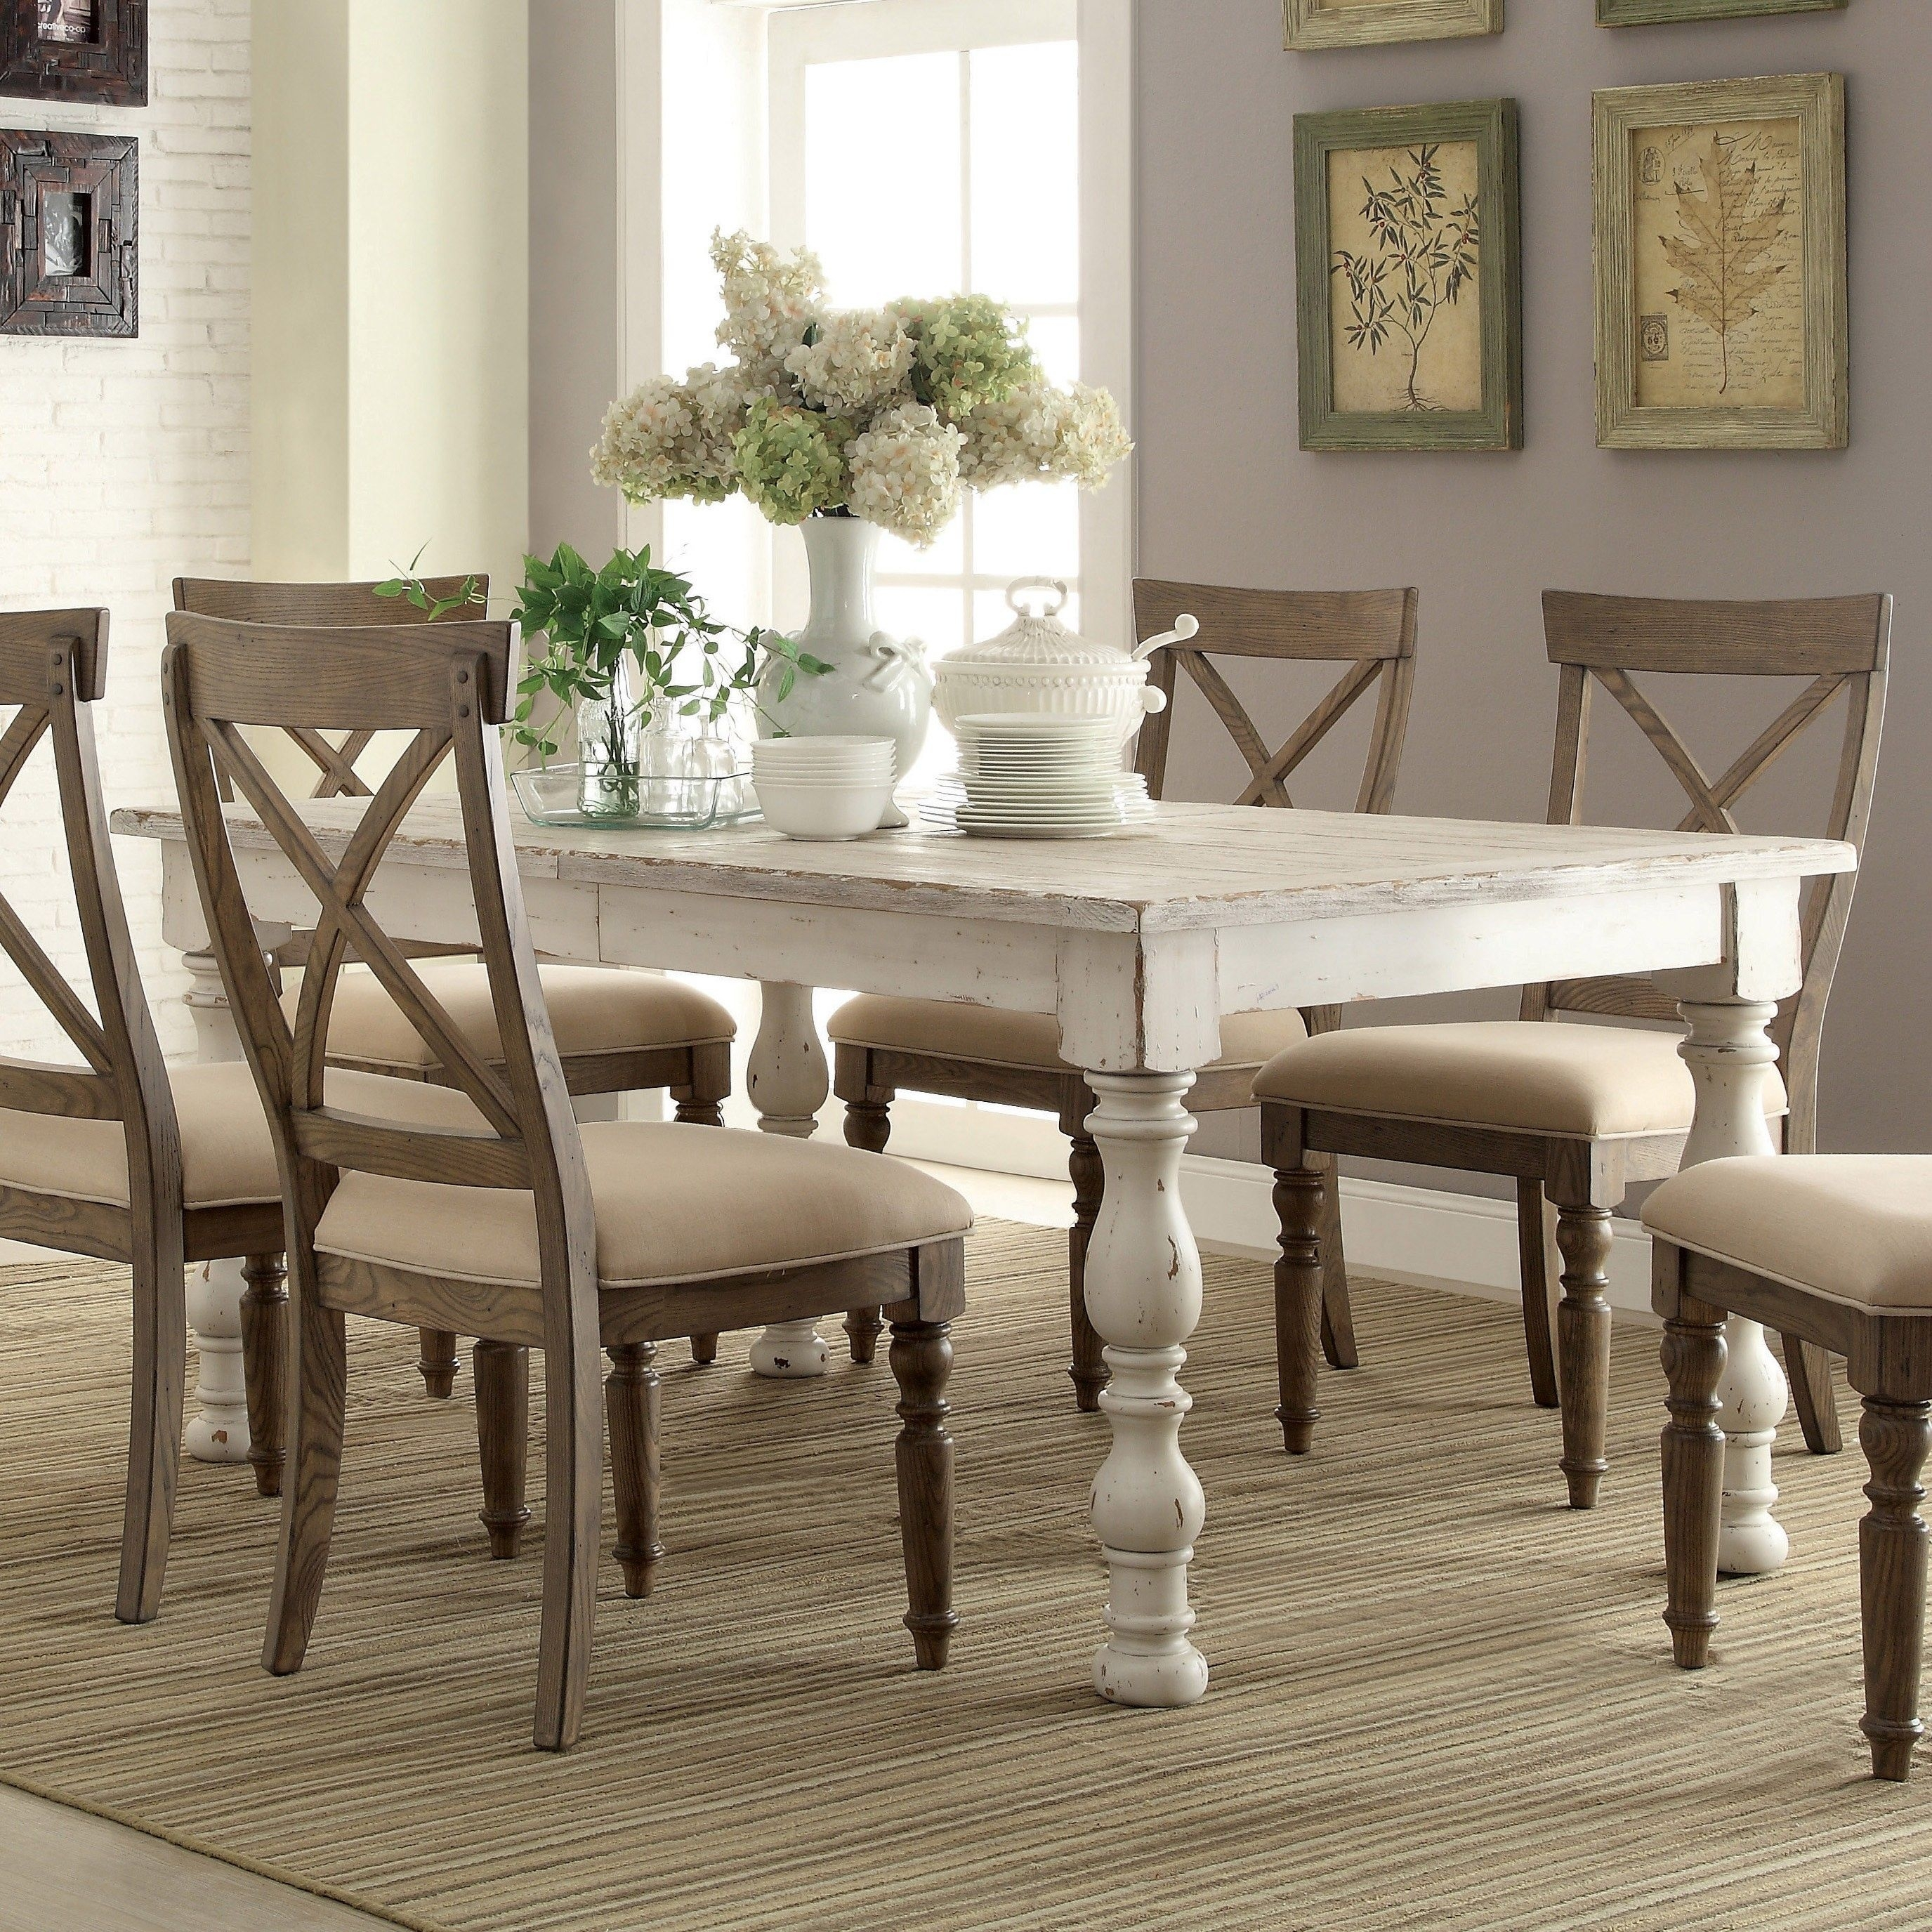 Aberdeen Wood Rectangular Dining Table Only In Weathered Worn White For Current Laurent 7 Piece Rectangle Dining Sets With Wood Chairs (Image 1 of 20)